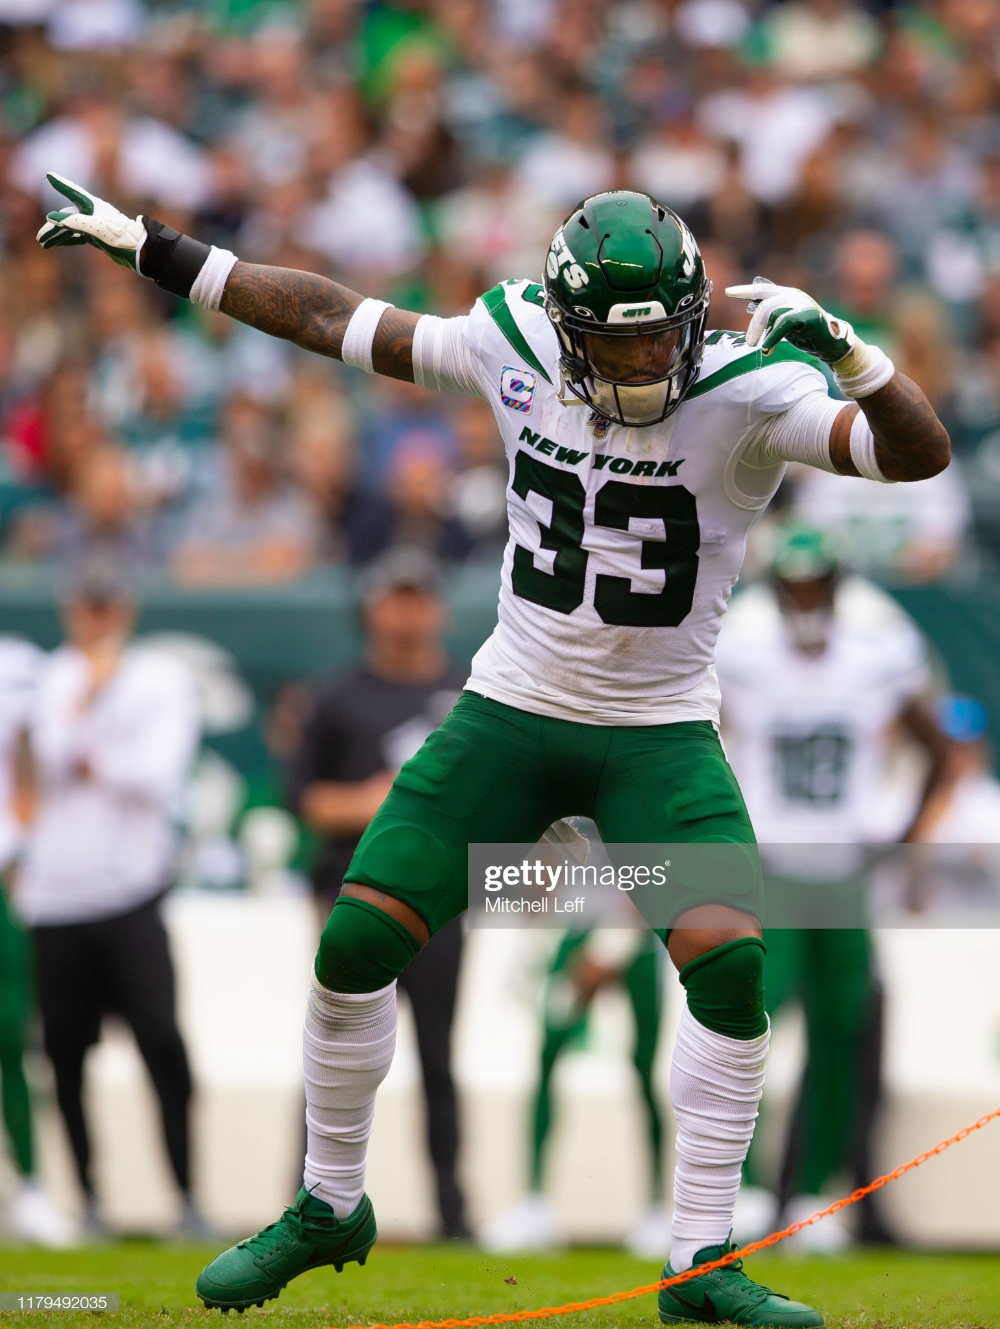 Jamal Adams Of The New York Jets Reacts Against The Philadelphia New York Jets Jamal Adams New York Jets Football